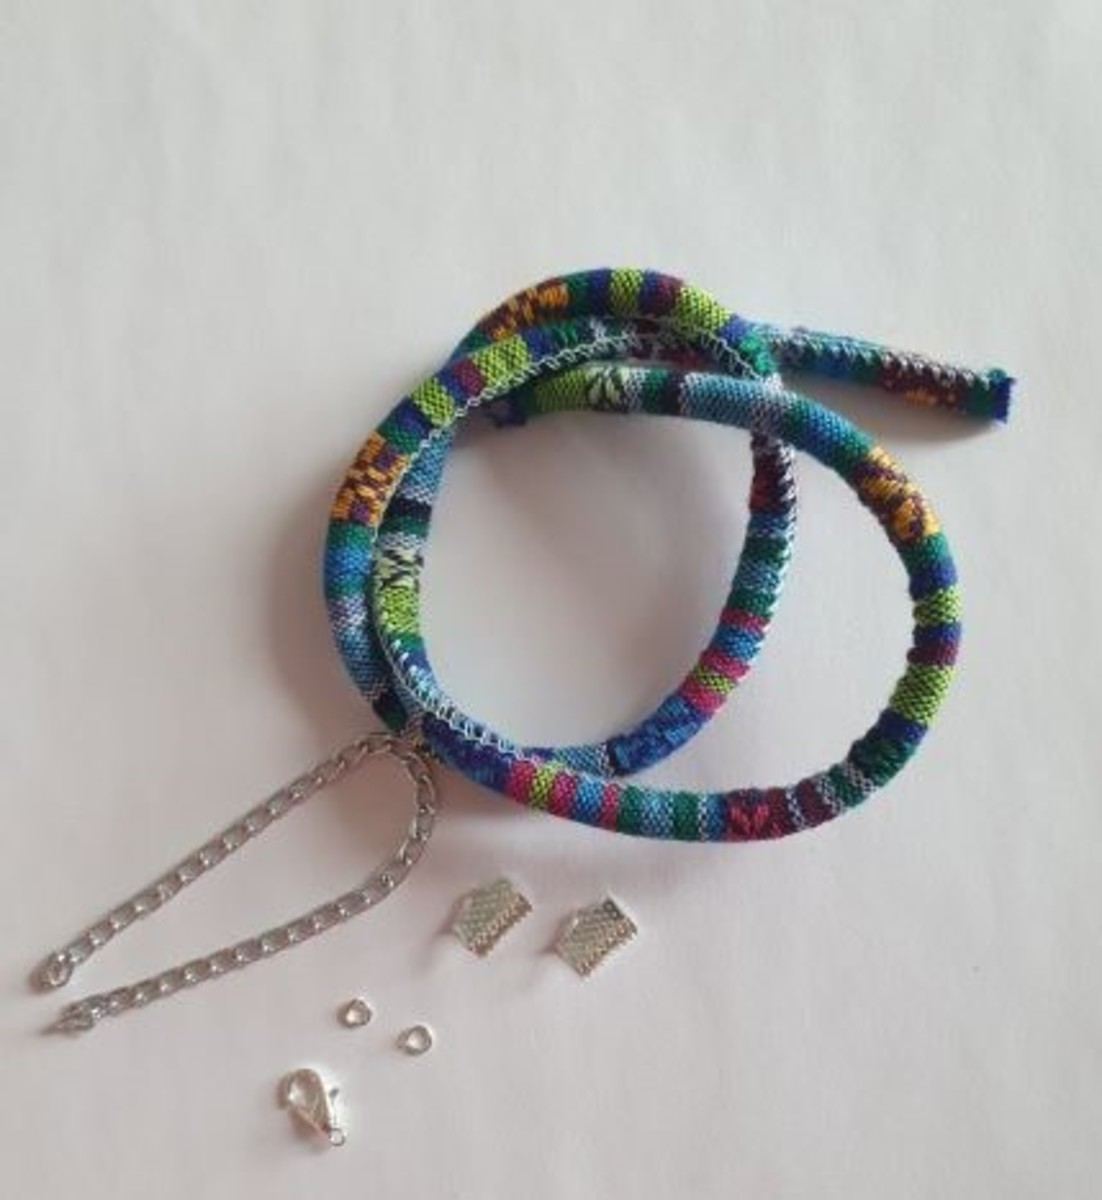 This is what will make the base of your necklace. Besides these, you will need only polymer clay to make the beads.